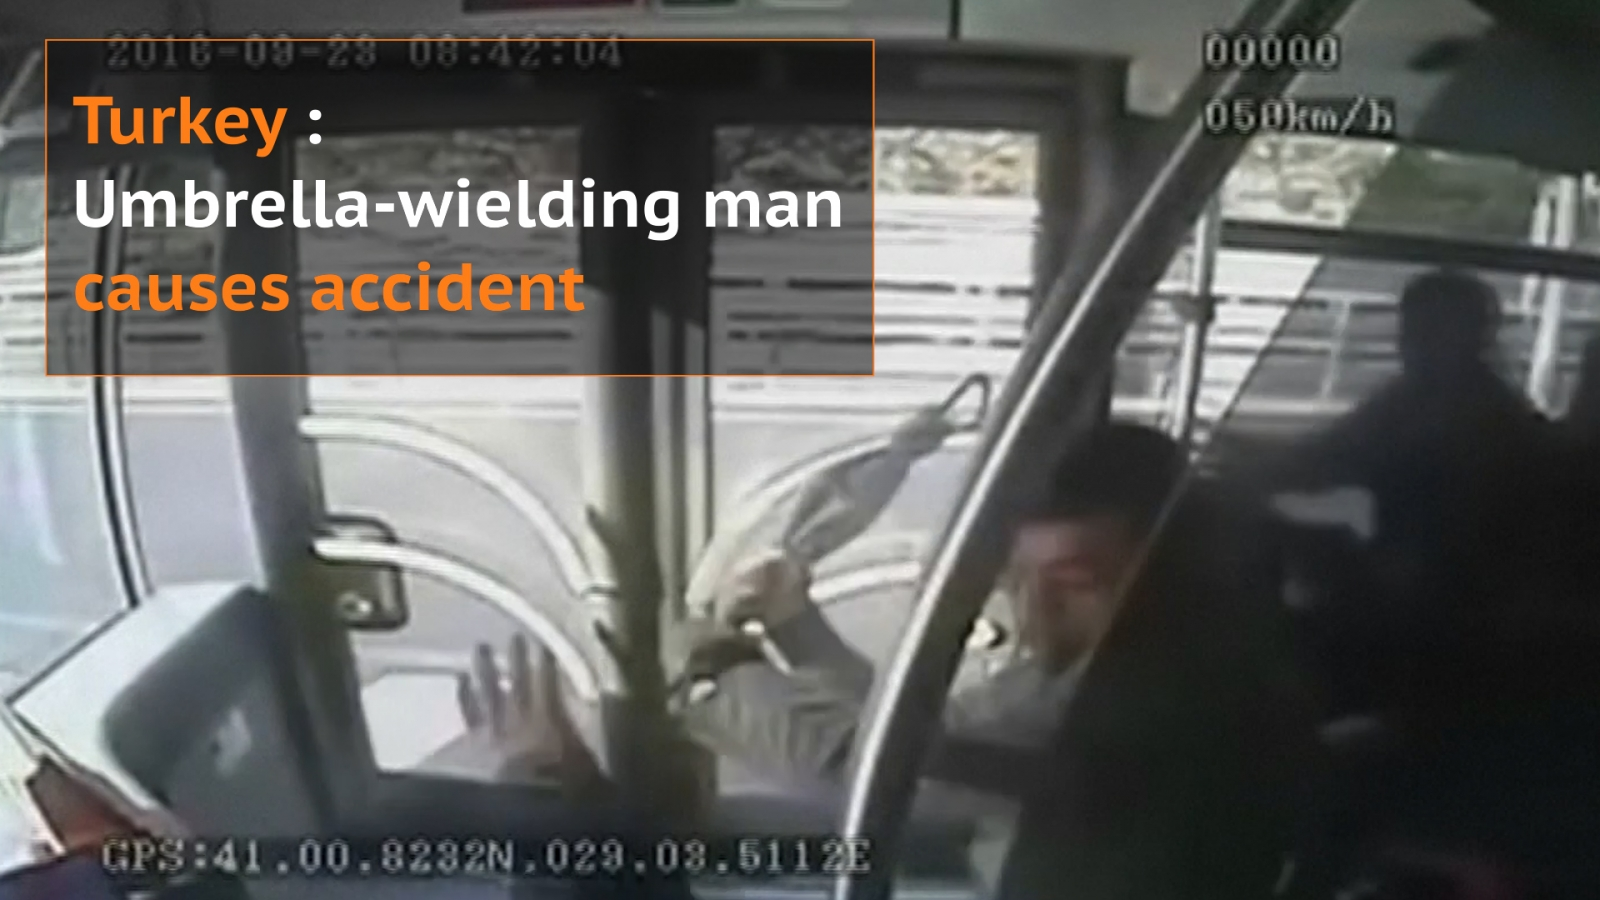 Bus driver causes accident after being attacked by umbrella-wielding passanger